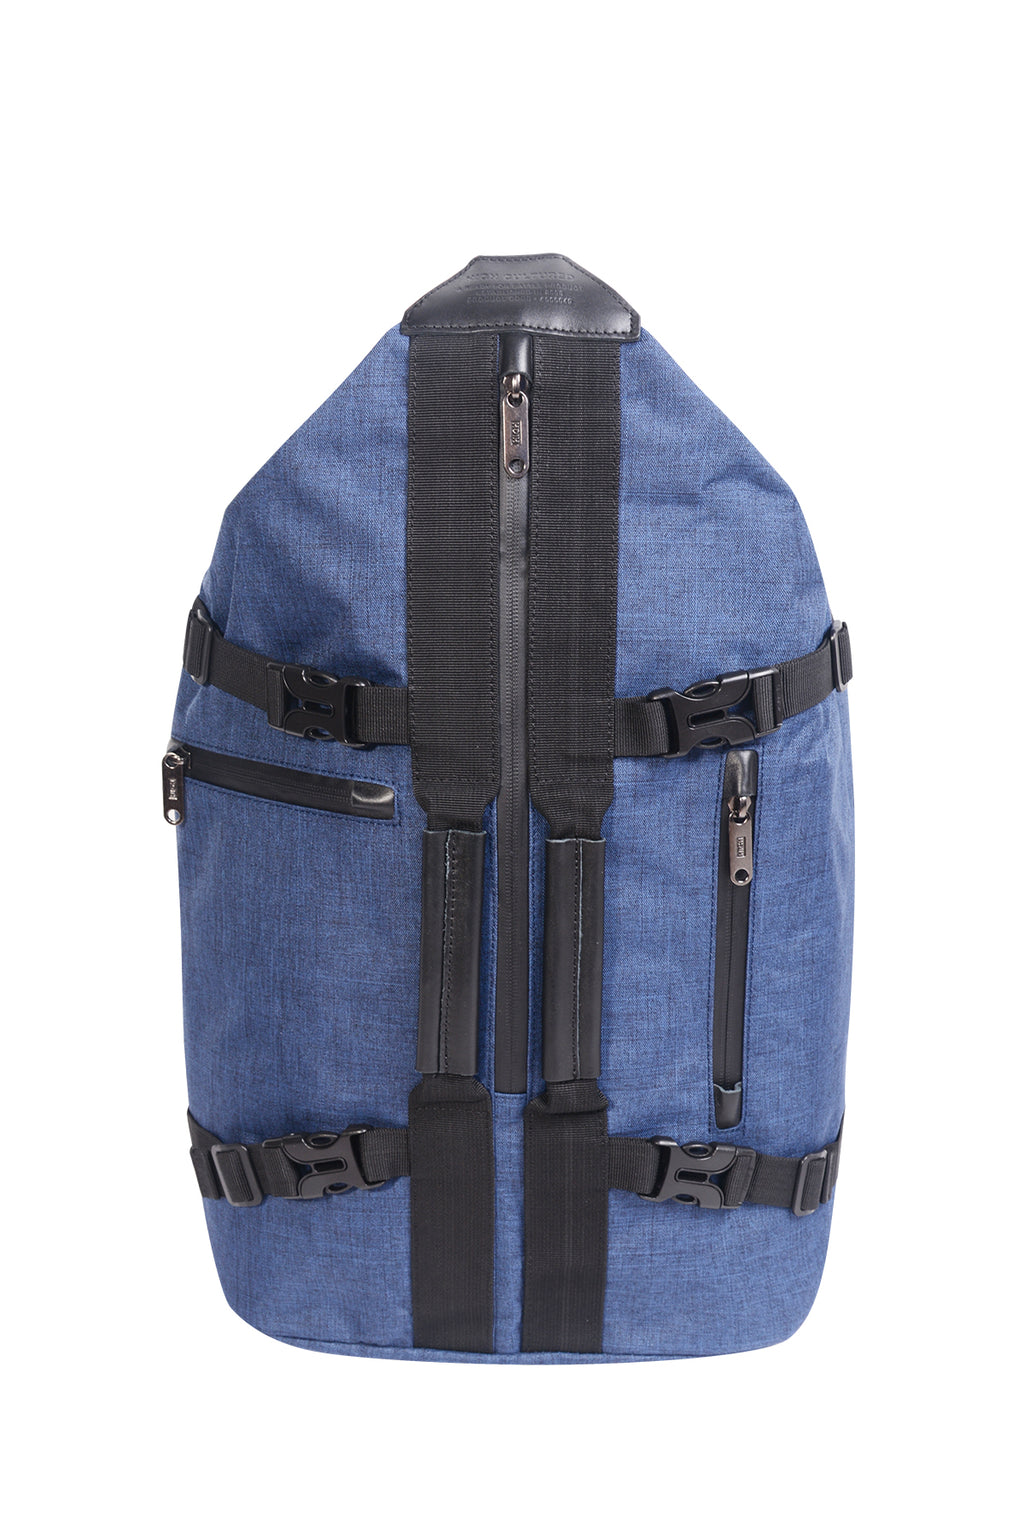 2-IN-1 TRAVEL BACKPACK | BLUE - 192